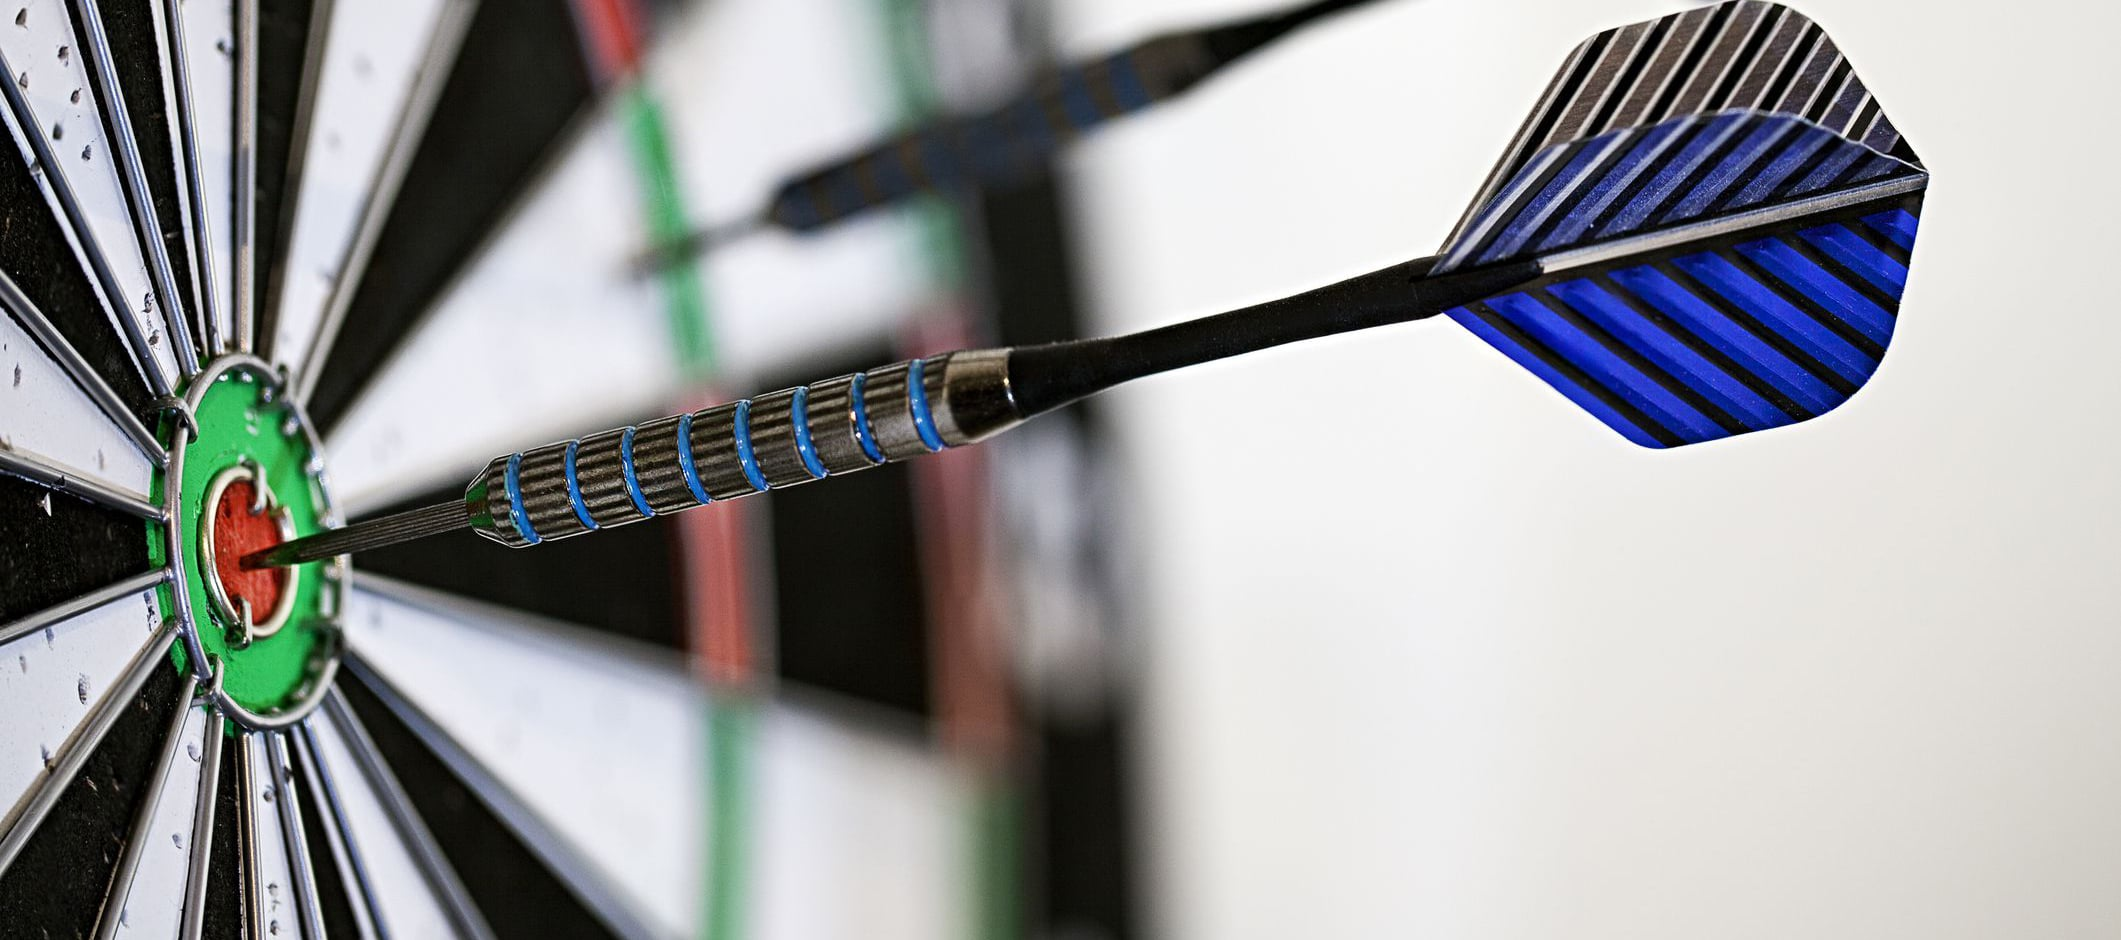 Best Dart Shafts Reviewed in Detail